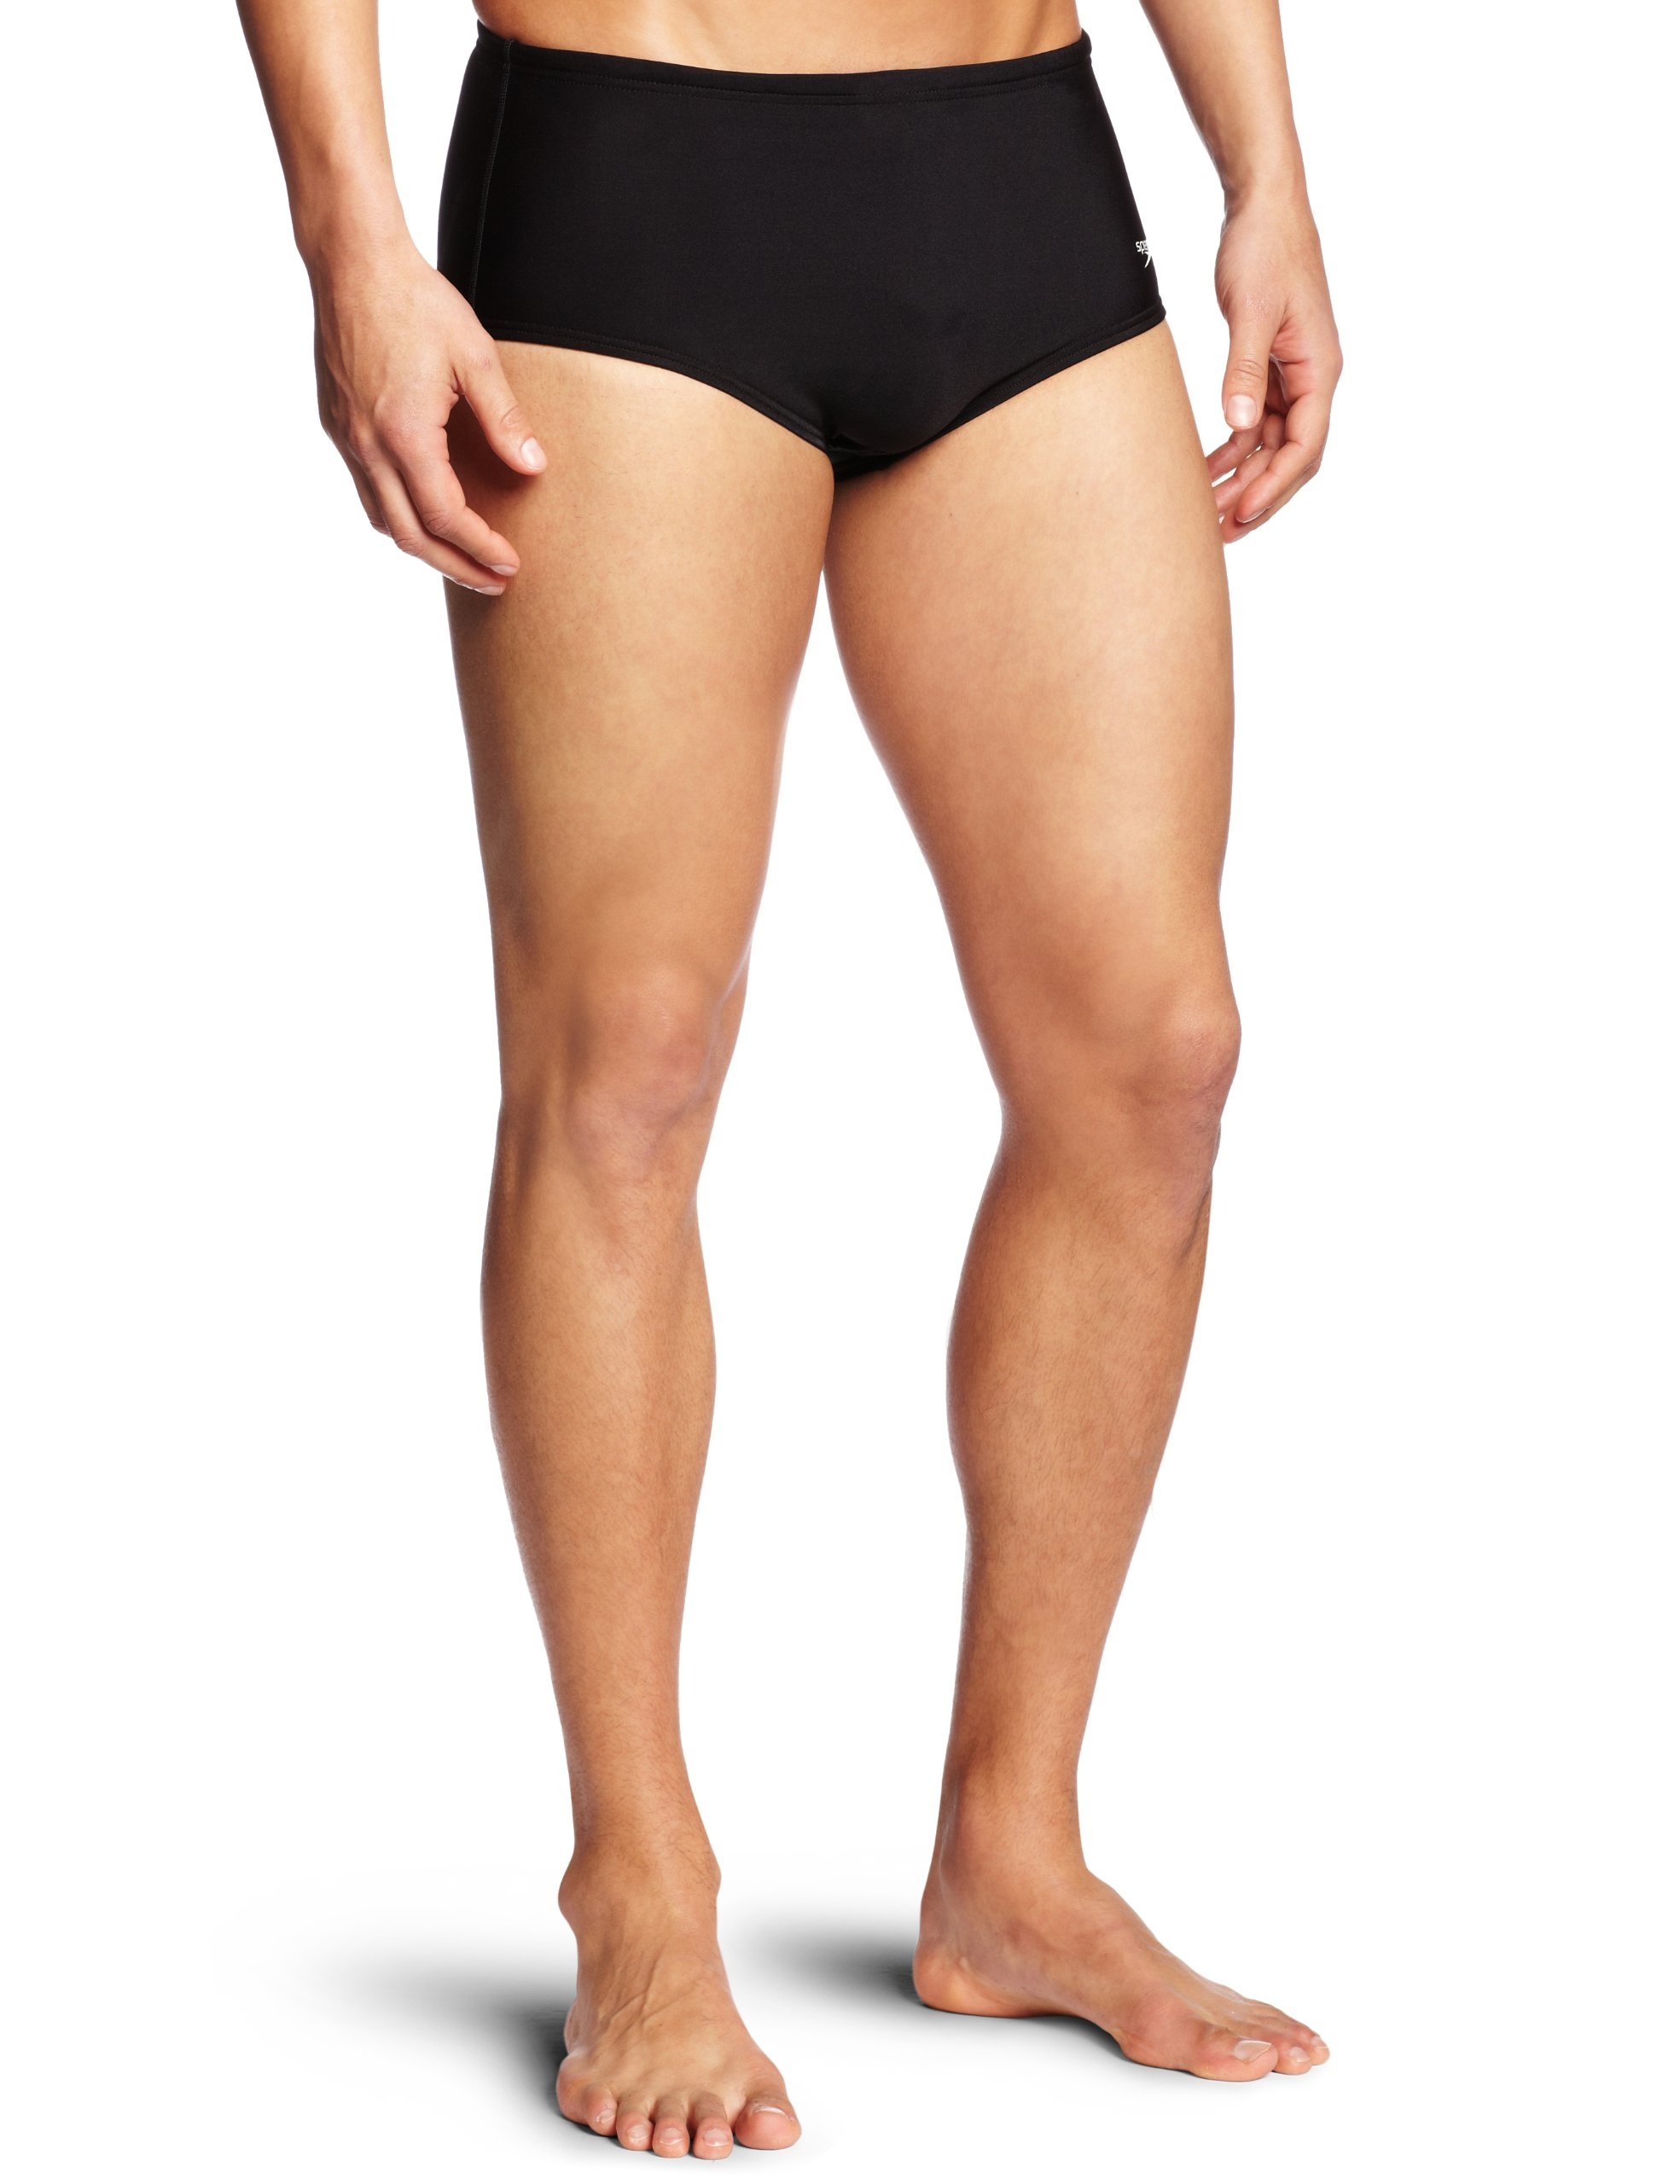 Speedo Men's Xtra Life Lycra Solid 5 Inch Brief Swimsuit, Black, 40